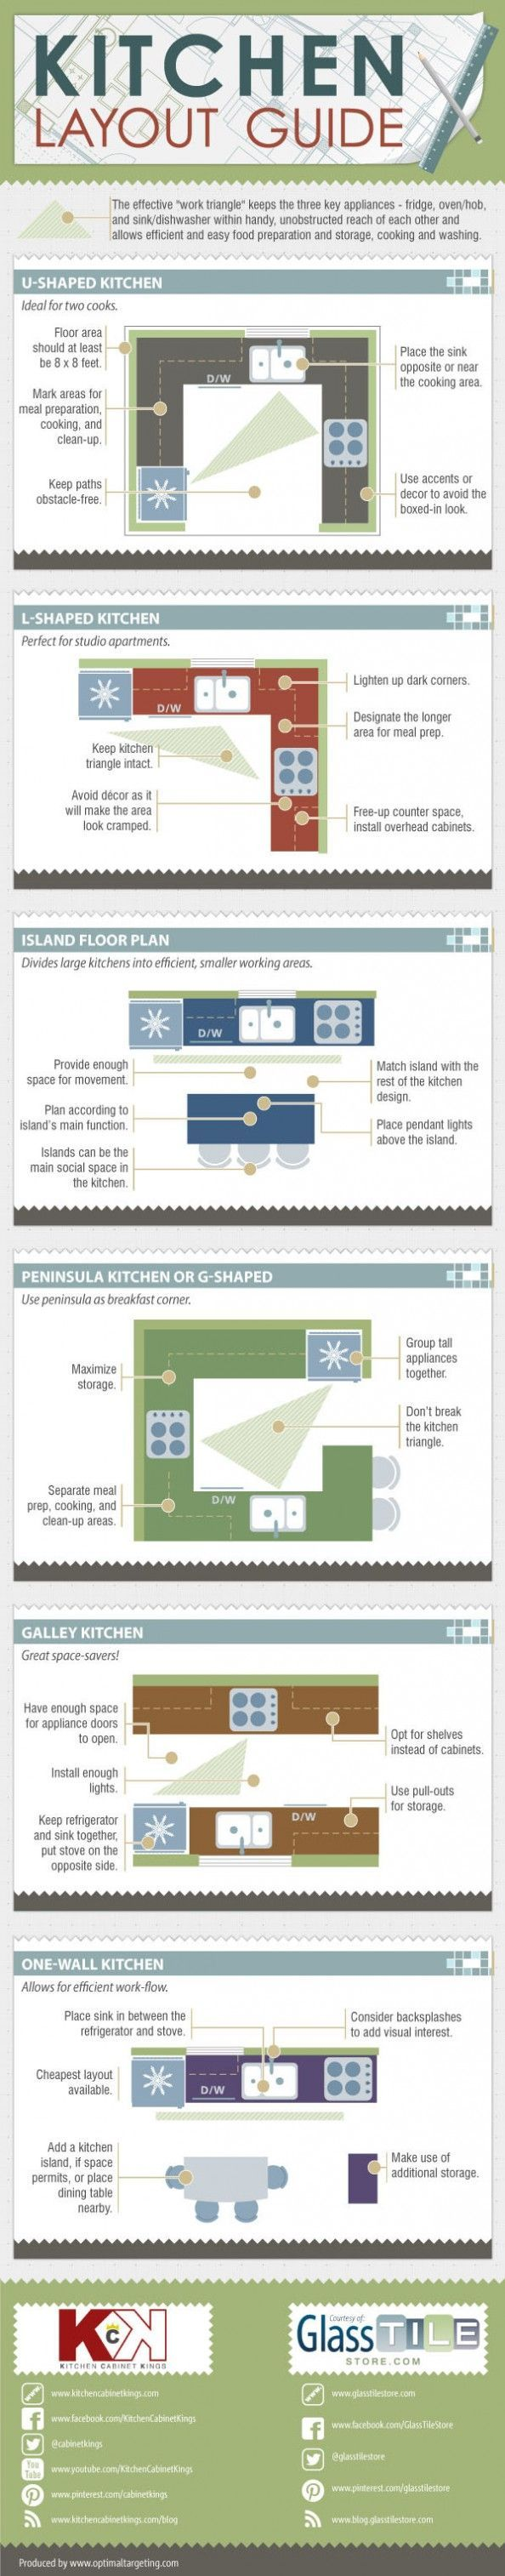 Planning a new kitchen or getting frustrated with your old one? These are great tips for maximizing space and functionality for a host of cook-space layouts.